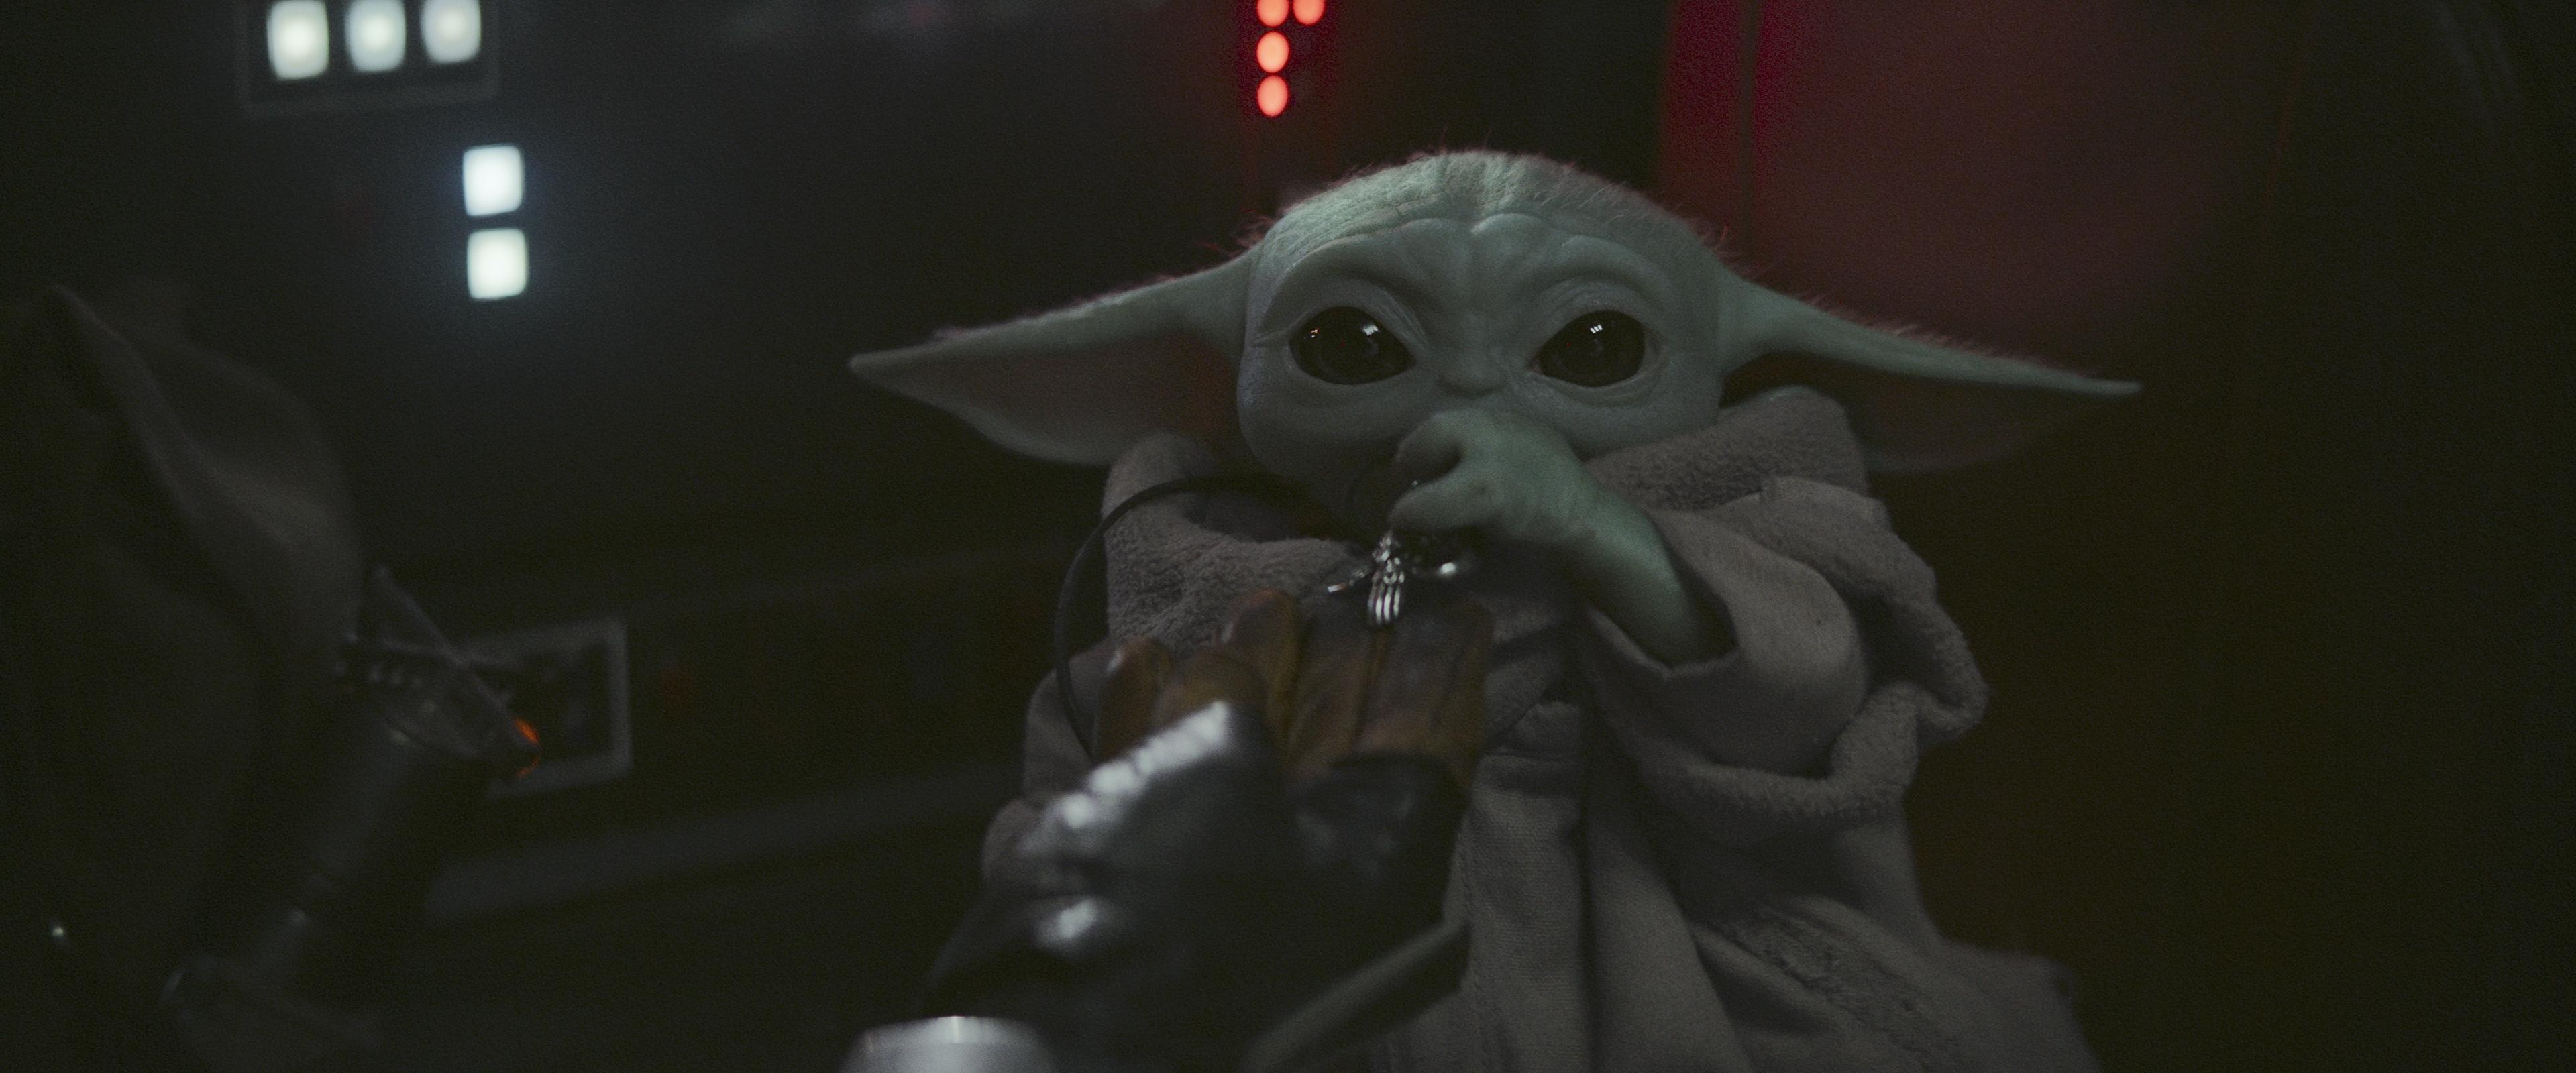 Starved for Baby Yoda? A 'Mandalorian' cereal is coming to Sam's Club later this month